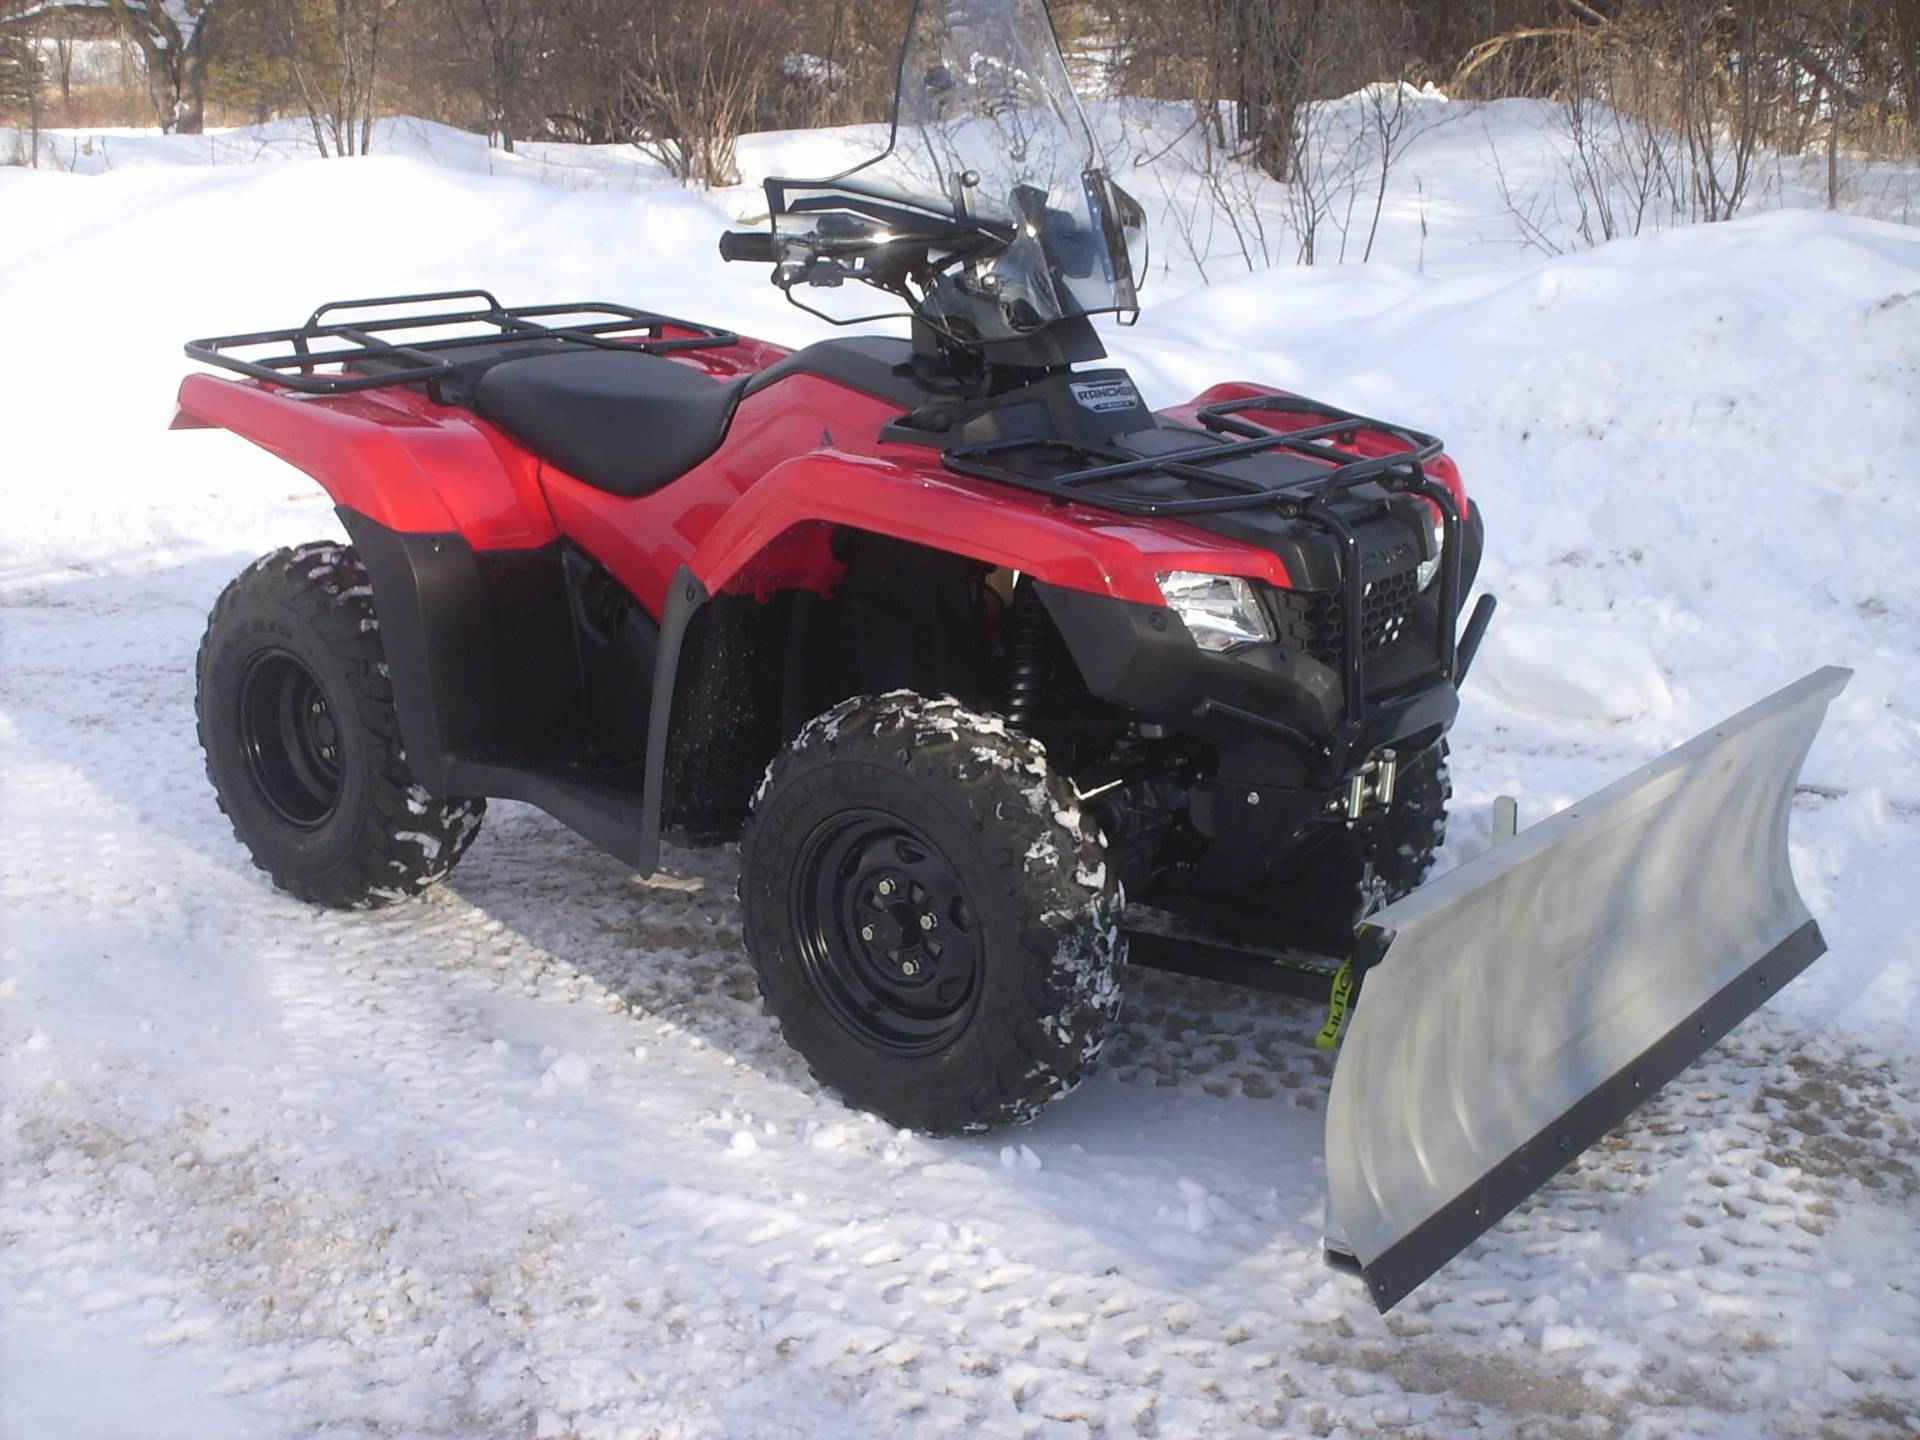 used 2017 honda fourtrax rancher 4x4 es atvs for sale in wisconsin on atv trades. Black Bedroom Furniture Sets. Home Design Ideas